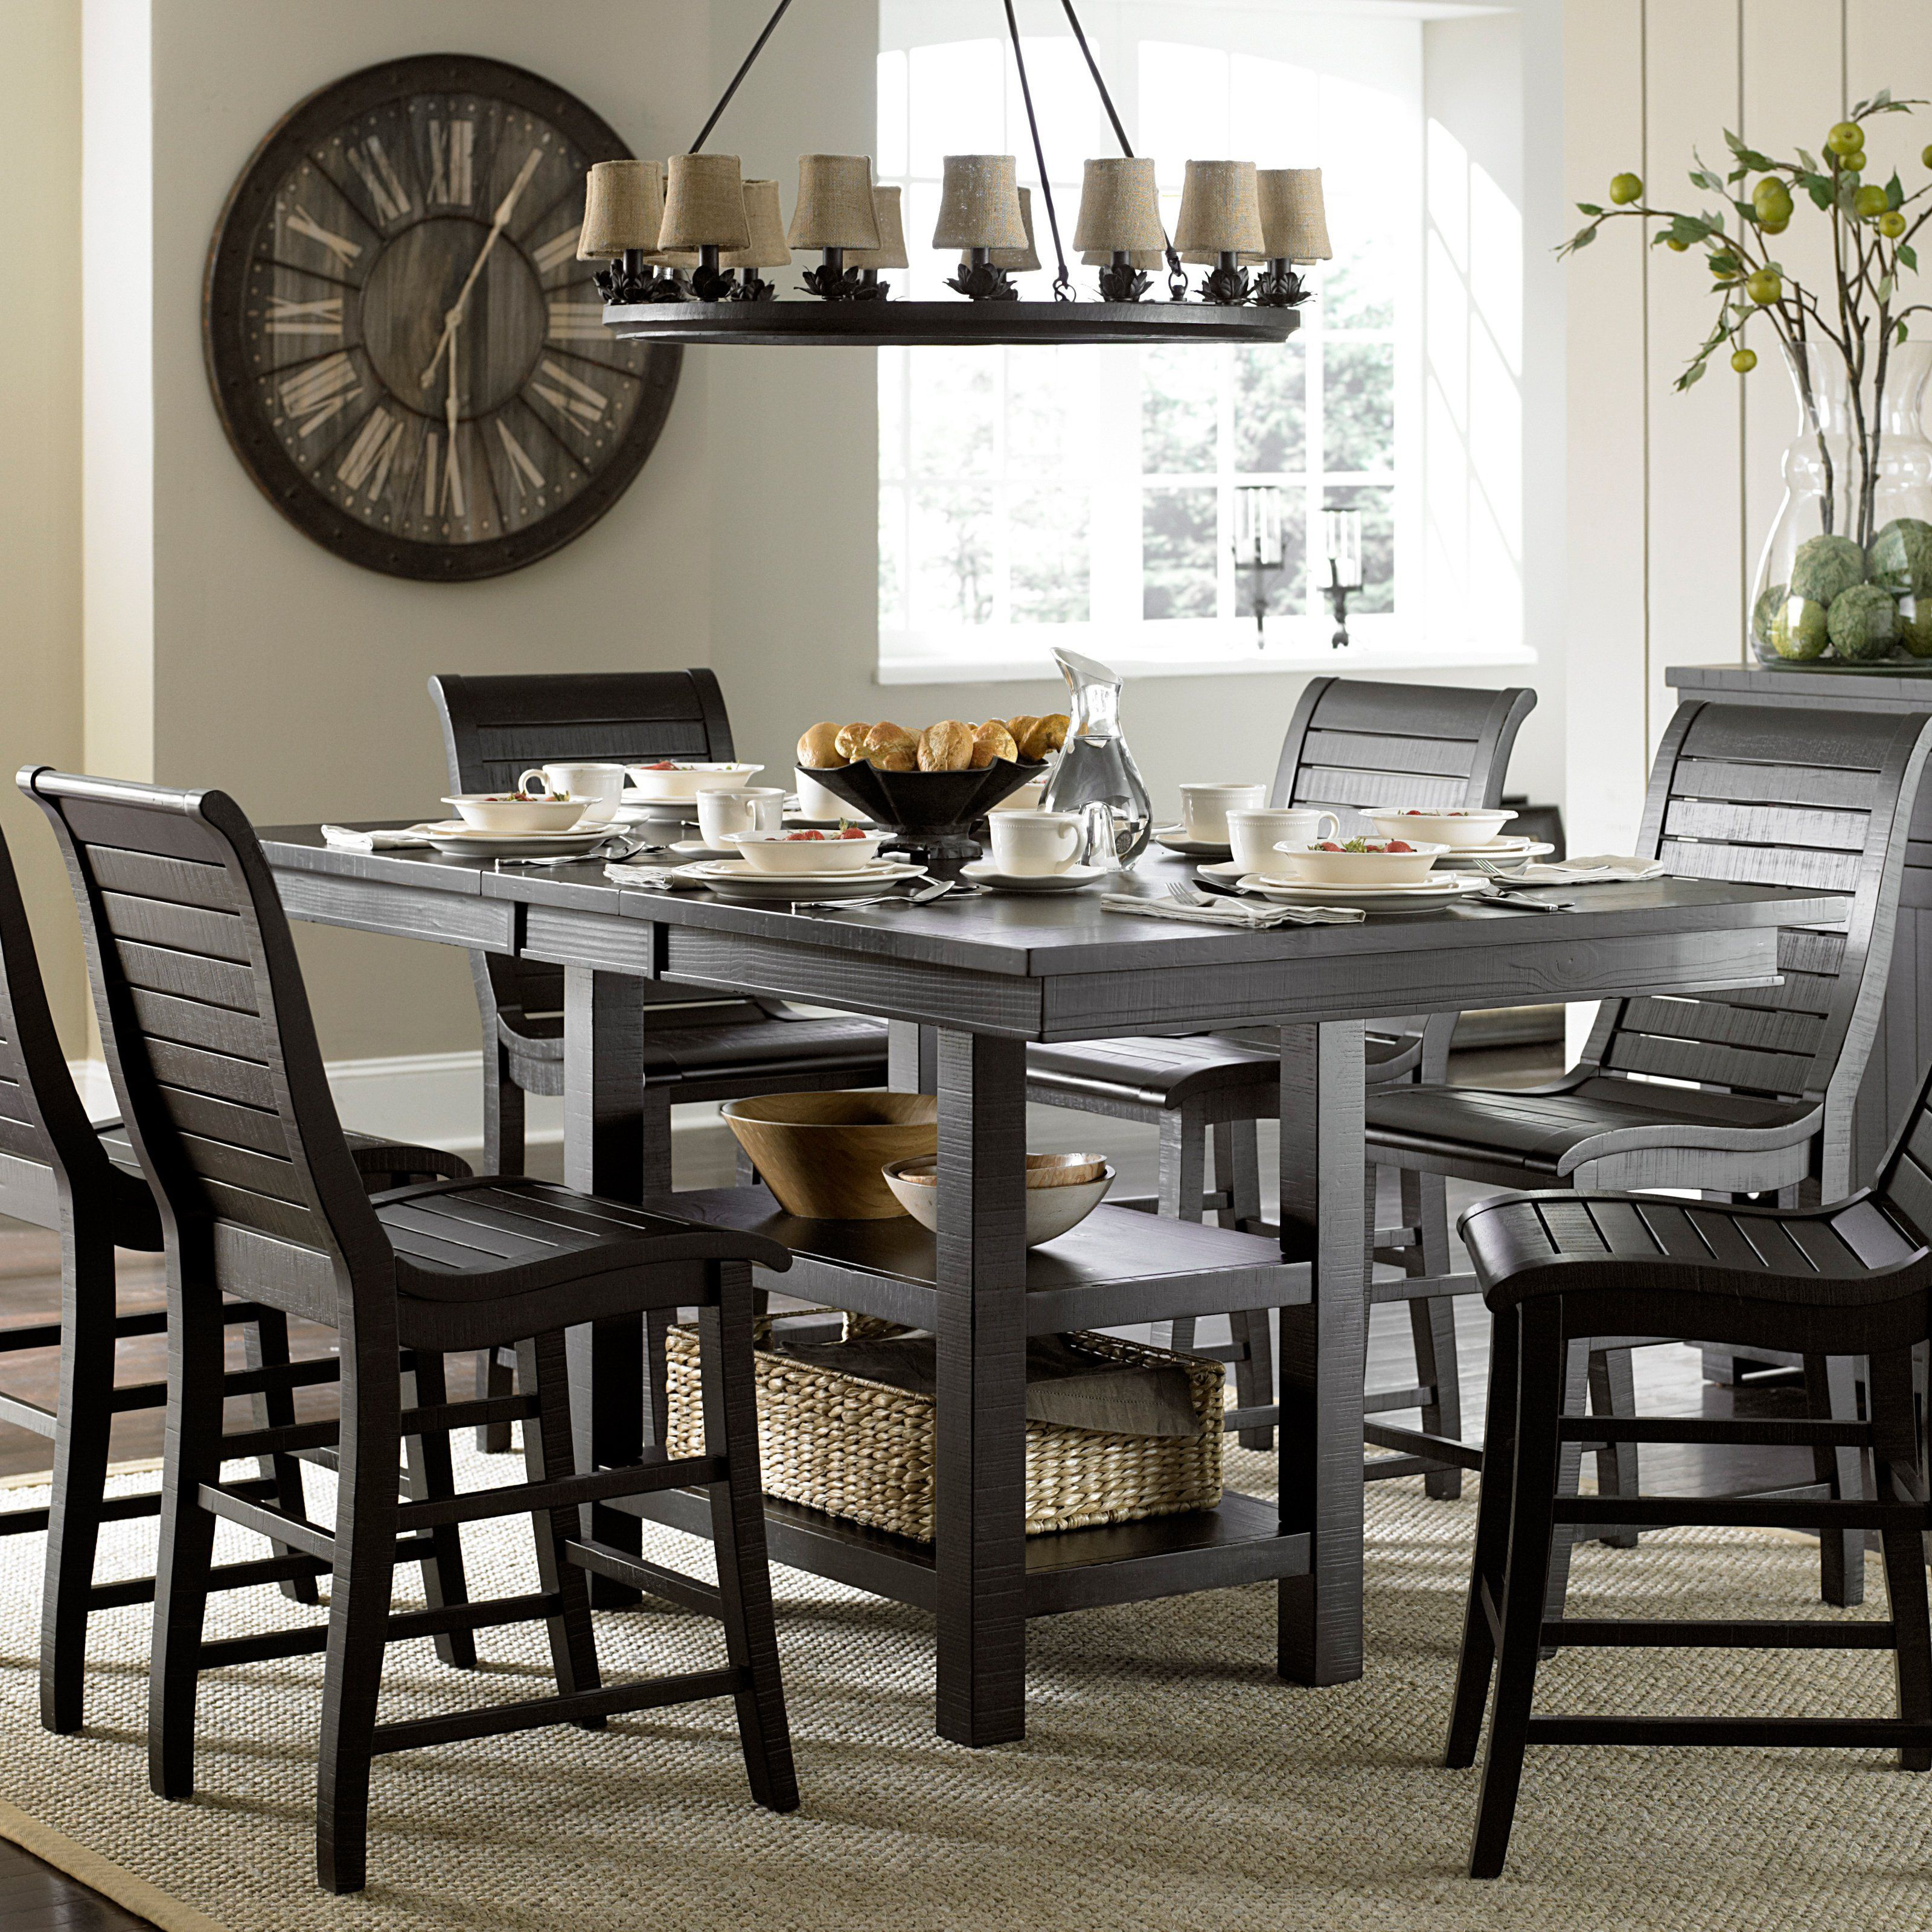 Progressive Furniture Willow Rectangular Counter Height Dining Table    P808 12B/12T